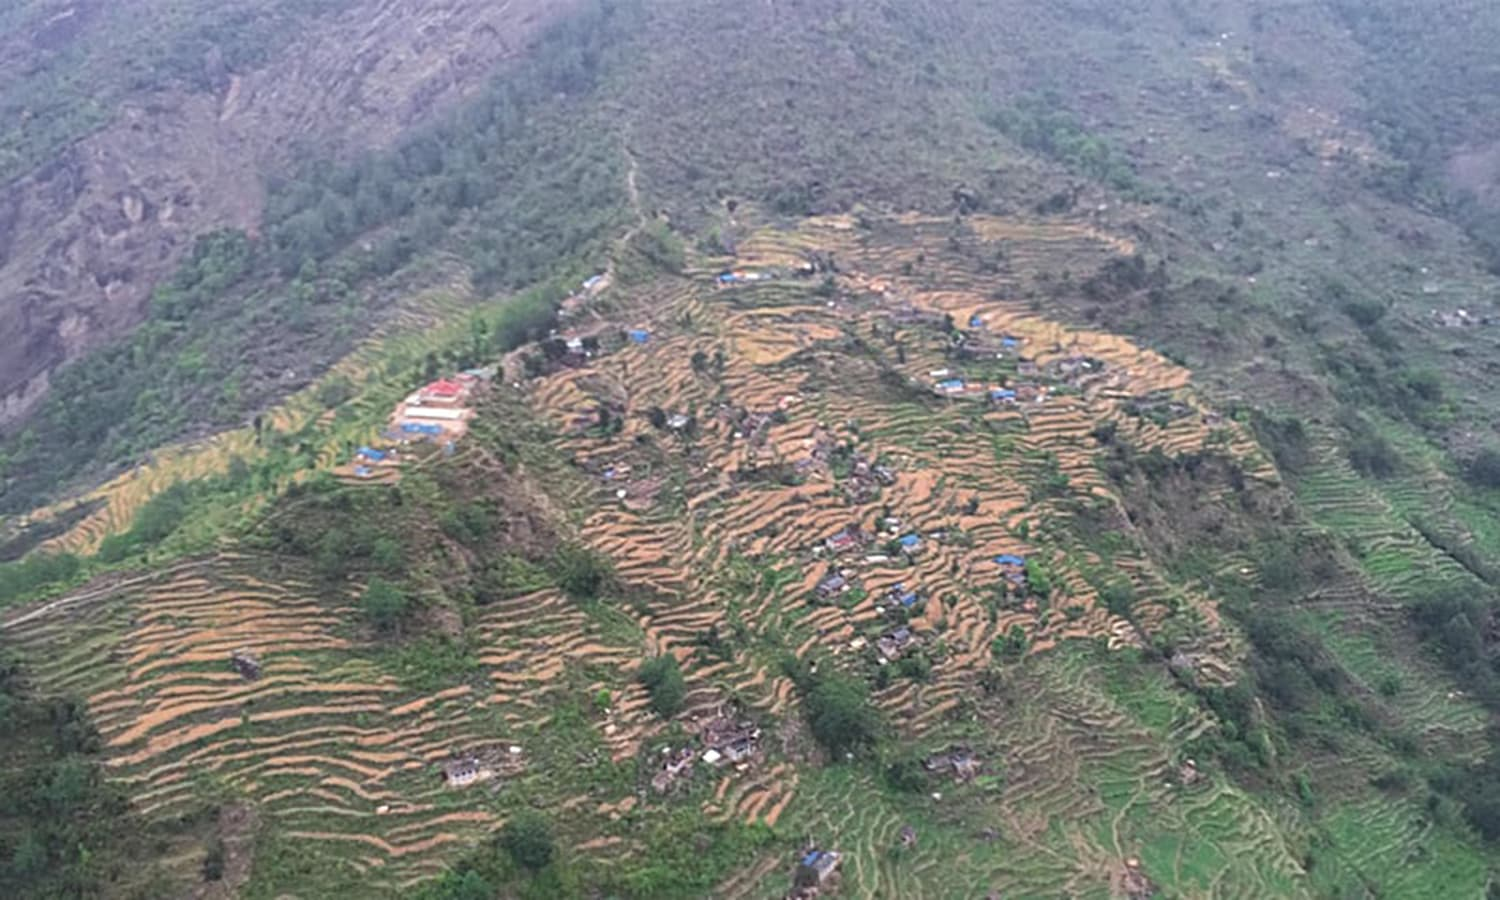 Villages were the hardest hit, with the military estimating that 60 to 99 per cent of village construction damaged or destroyed by the quake in the outer districts. This is a damaged hamlet just north of Lambagar in the northeast, close to the epicentre of the earthquake. Already remote, it was completely cut off from the rest of the county before the chopper flights started.